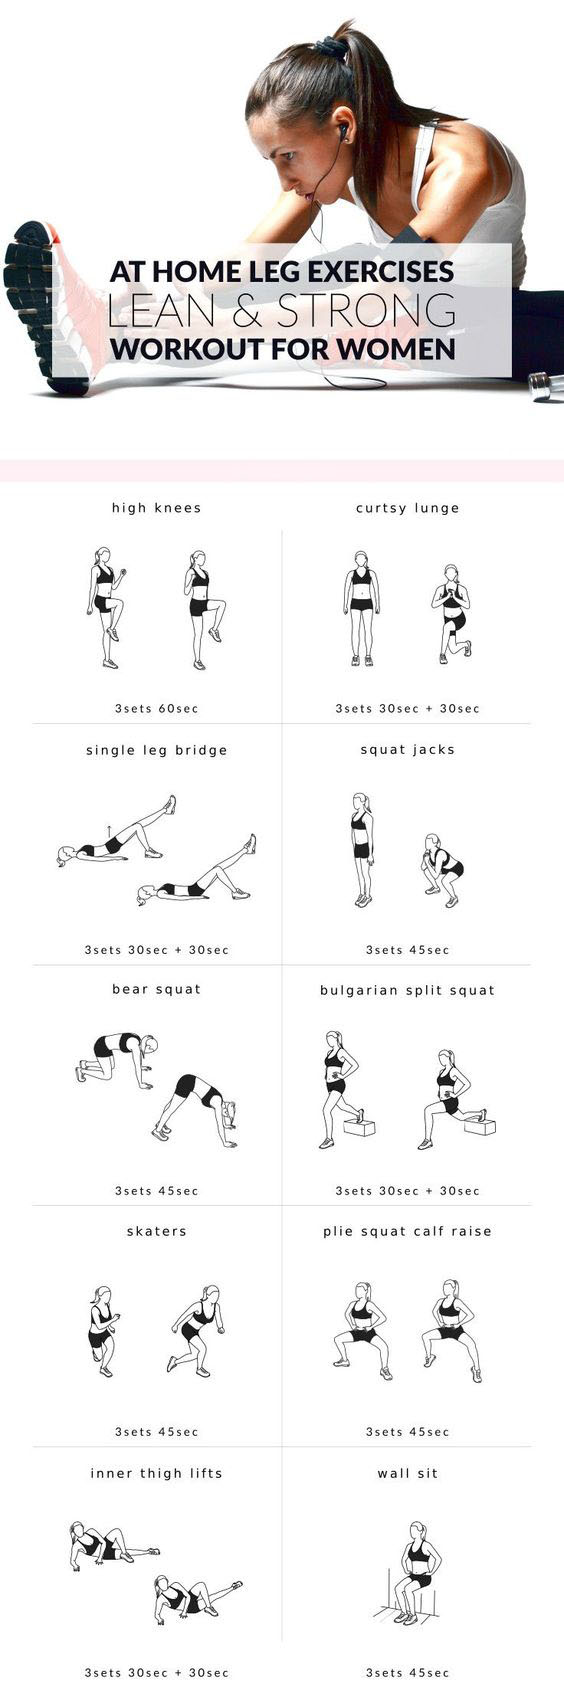 Upgrade your workout routine with these 10 leg exercises for women. Work your thighs, hips, quads, hamstrings and calves at home to build shapely legs and get the lean and strong lower body you've always wanted!